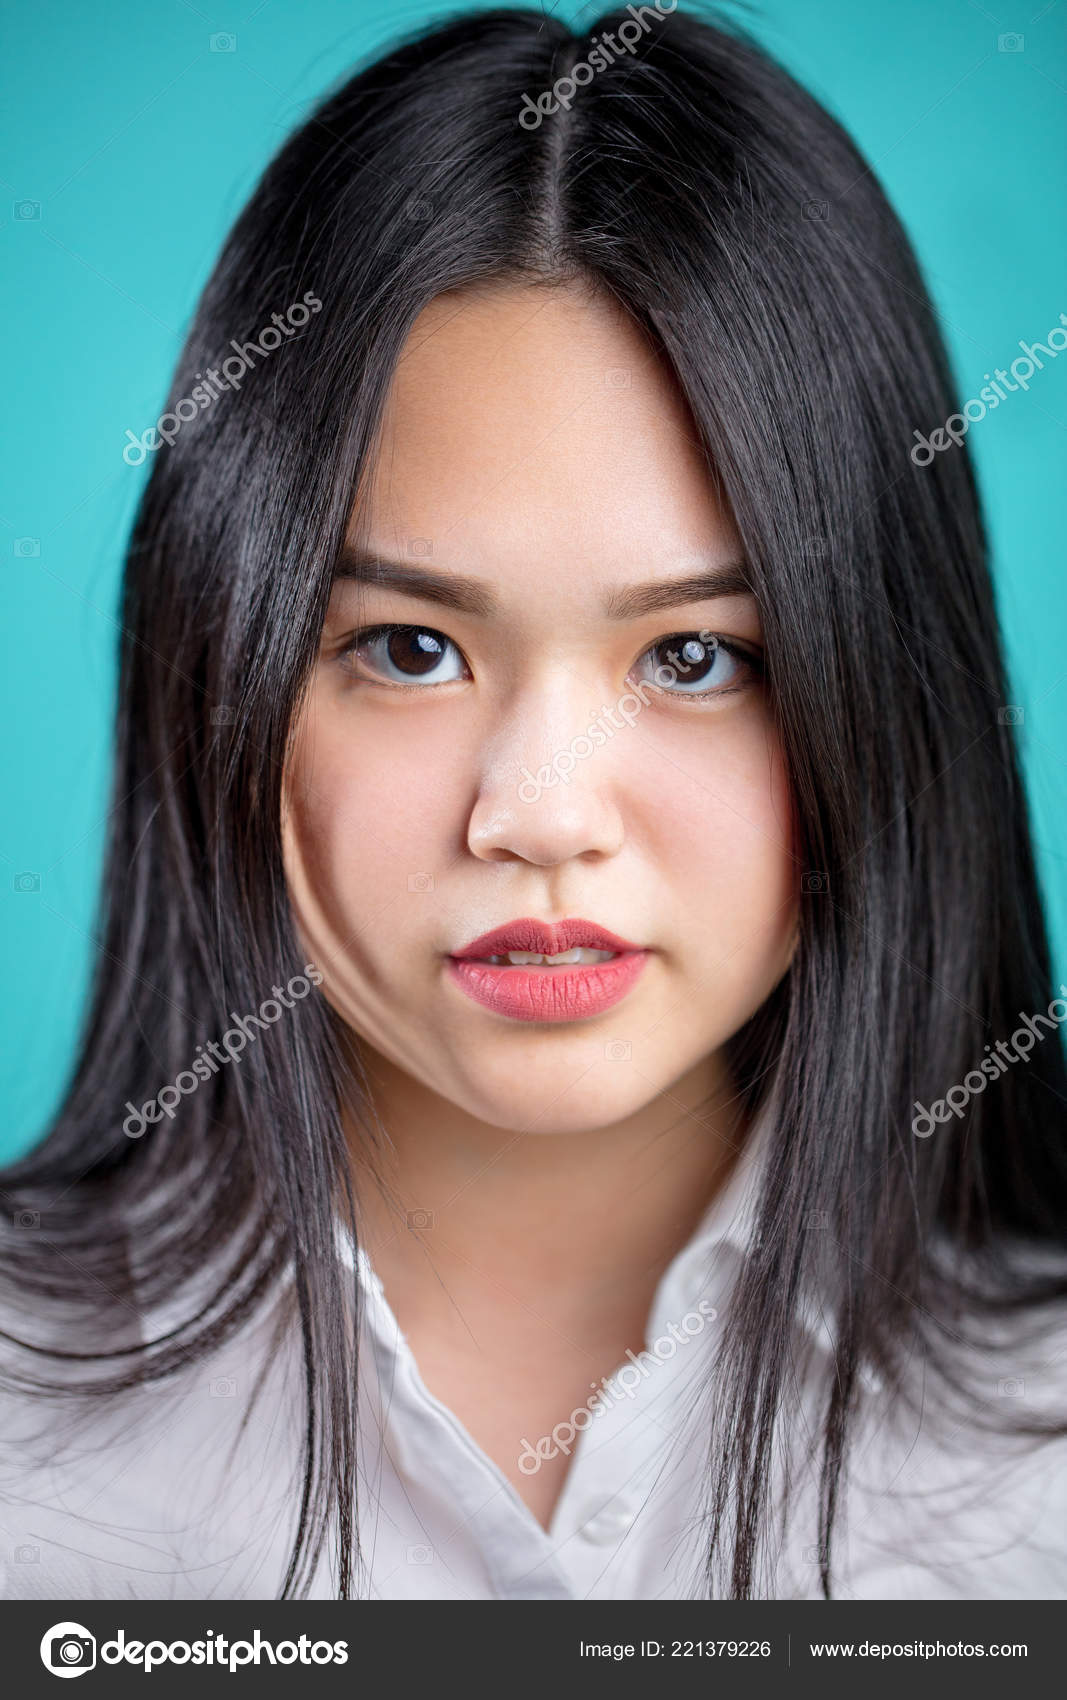 Close Up Portrait Of Long Hair Asian Woman With White Shirt Stock